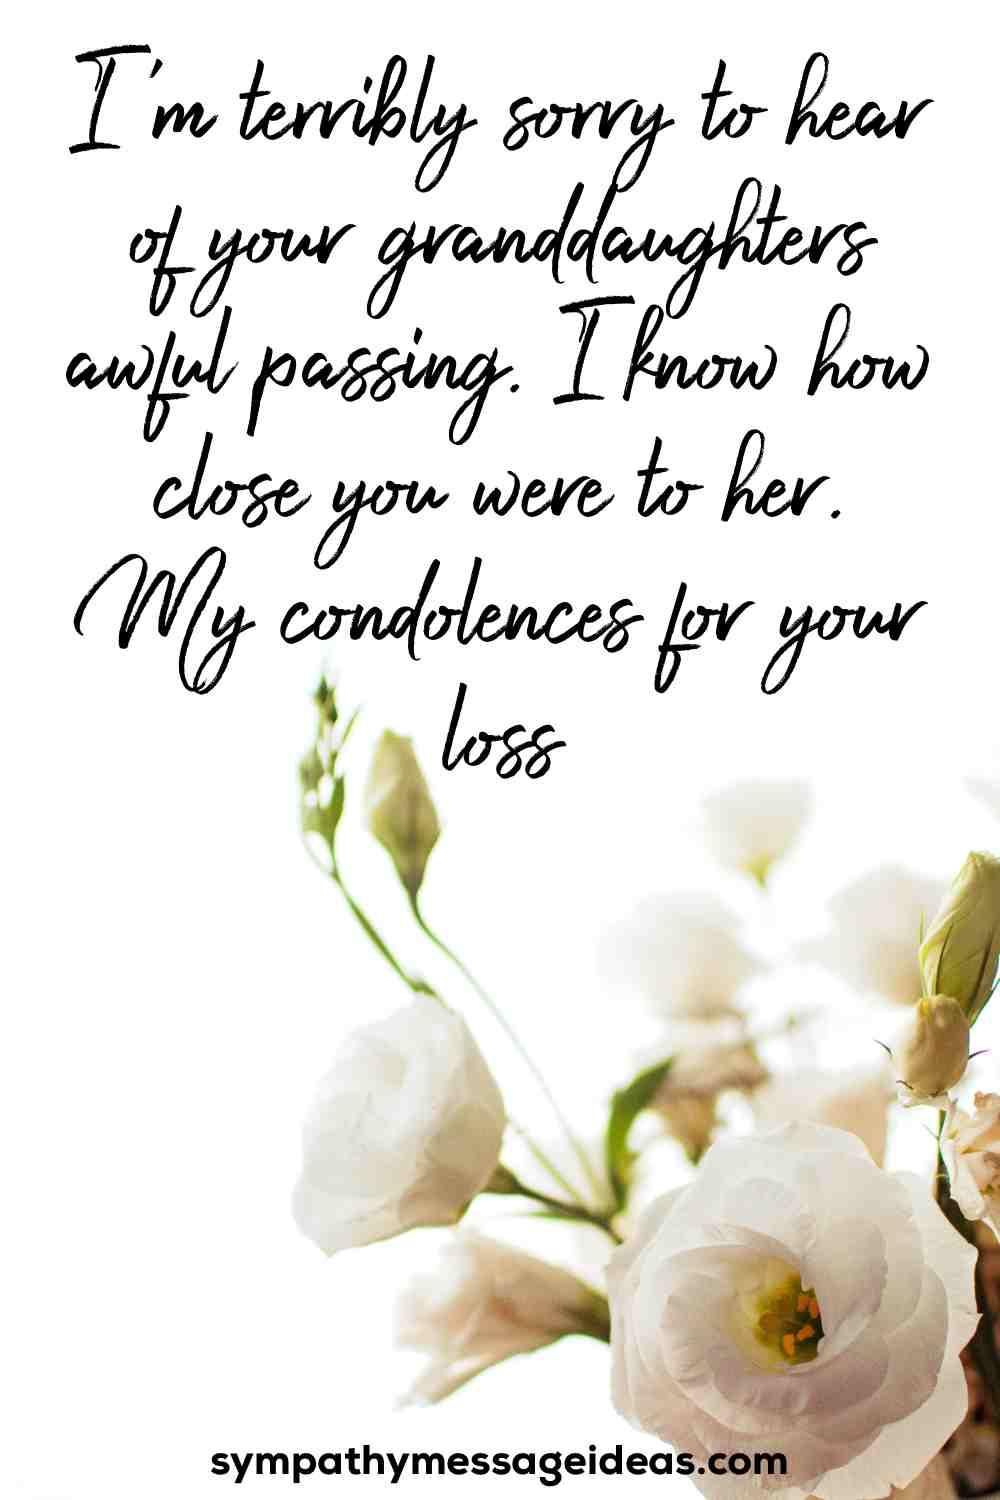 condolence message for loss of granddaughter